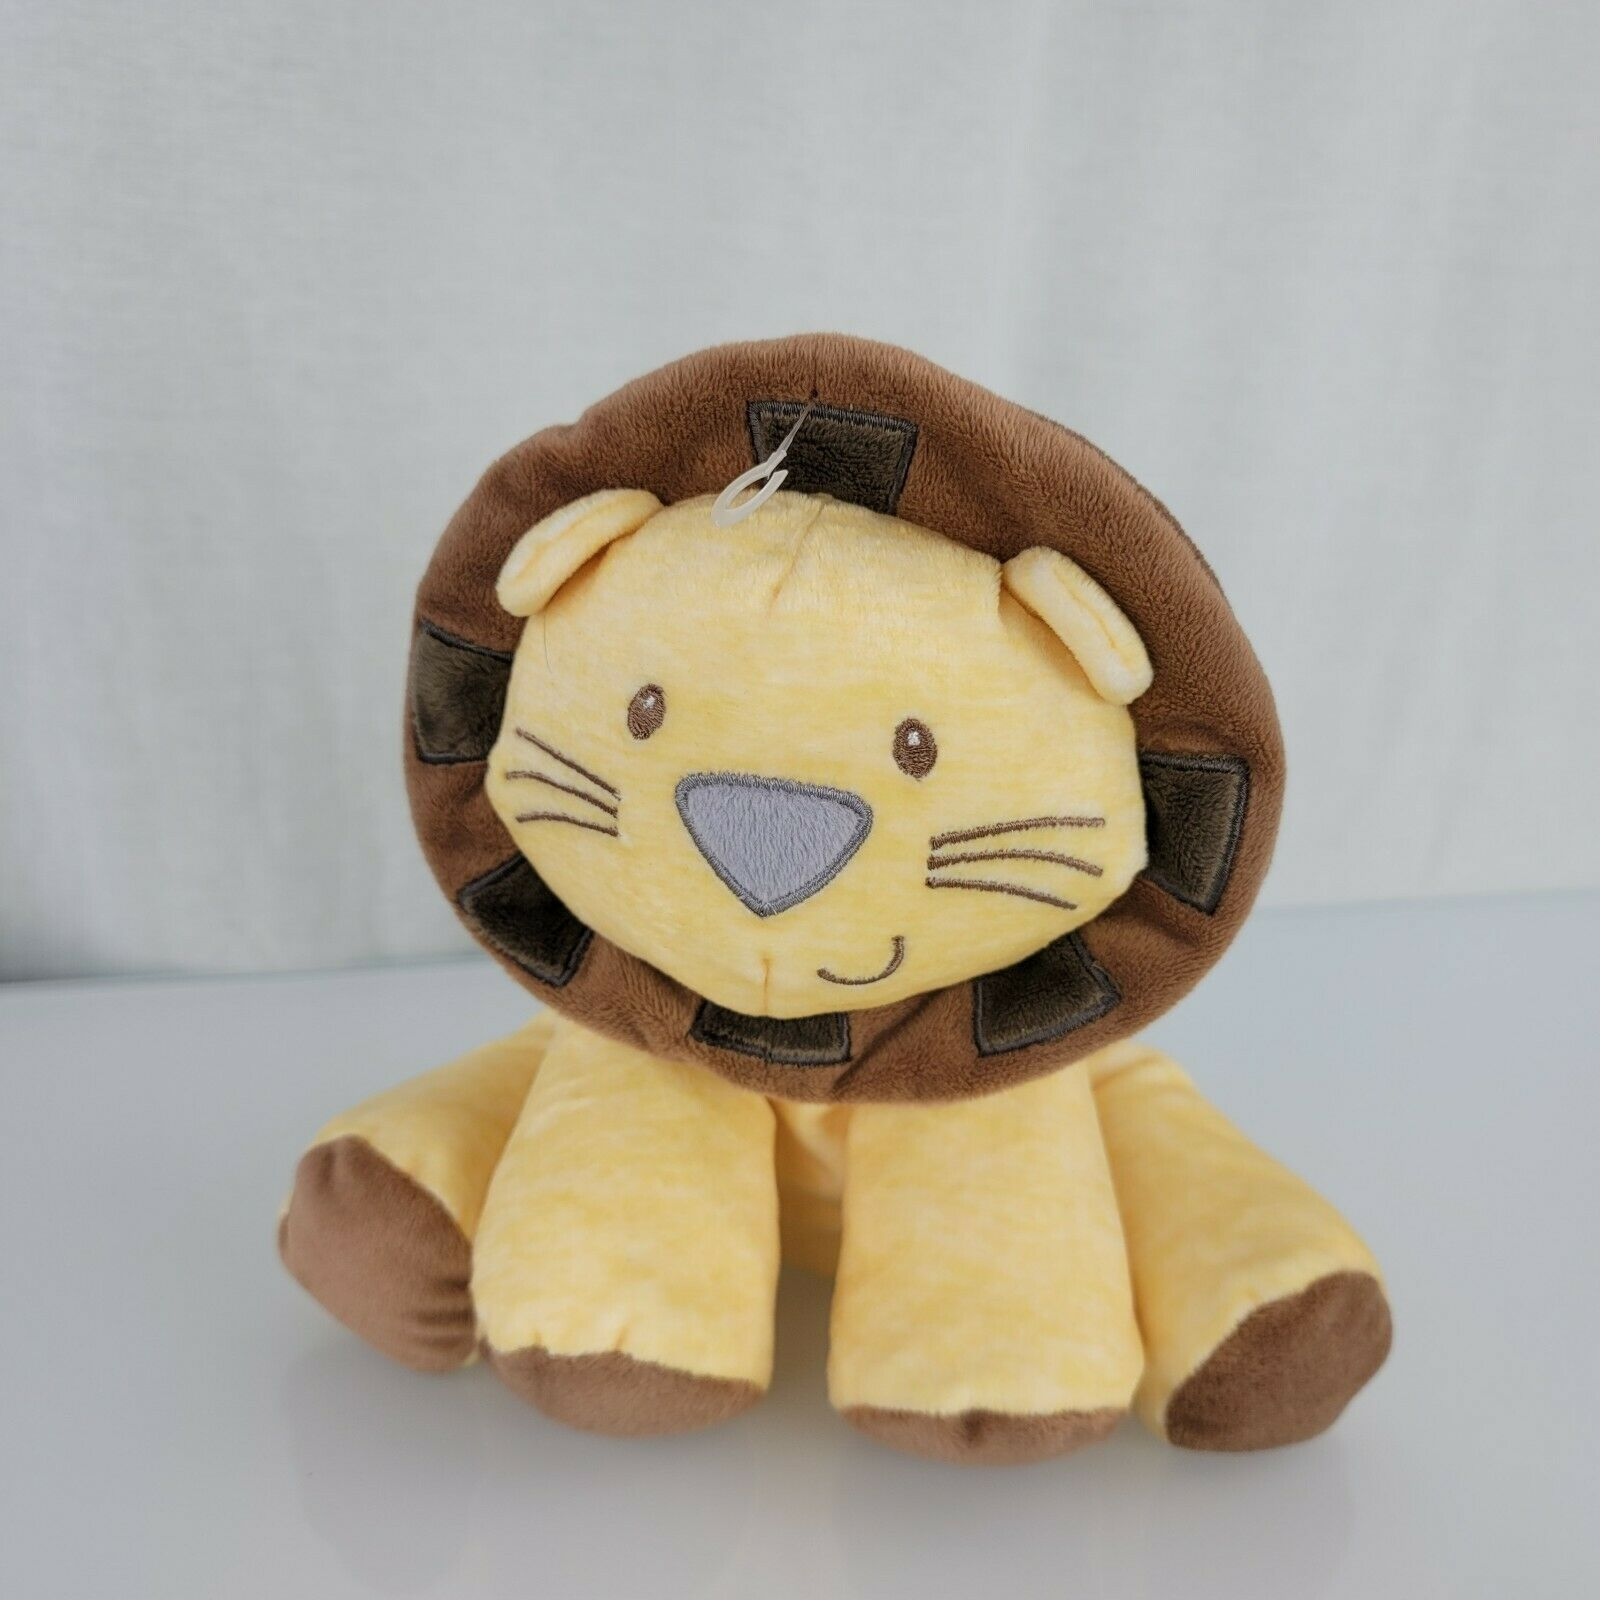 Primary image for Baby Gund Playful Pals Stuffed Plush Lion 4059945